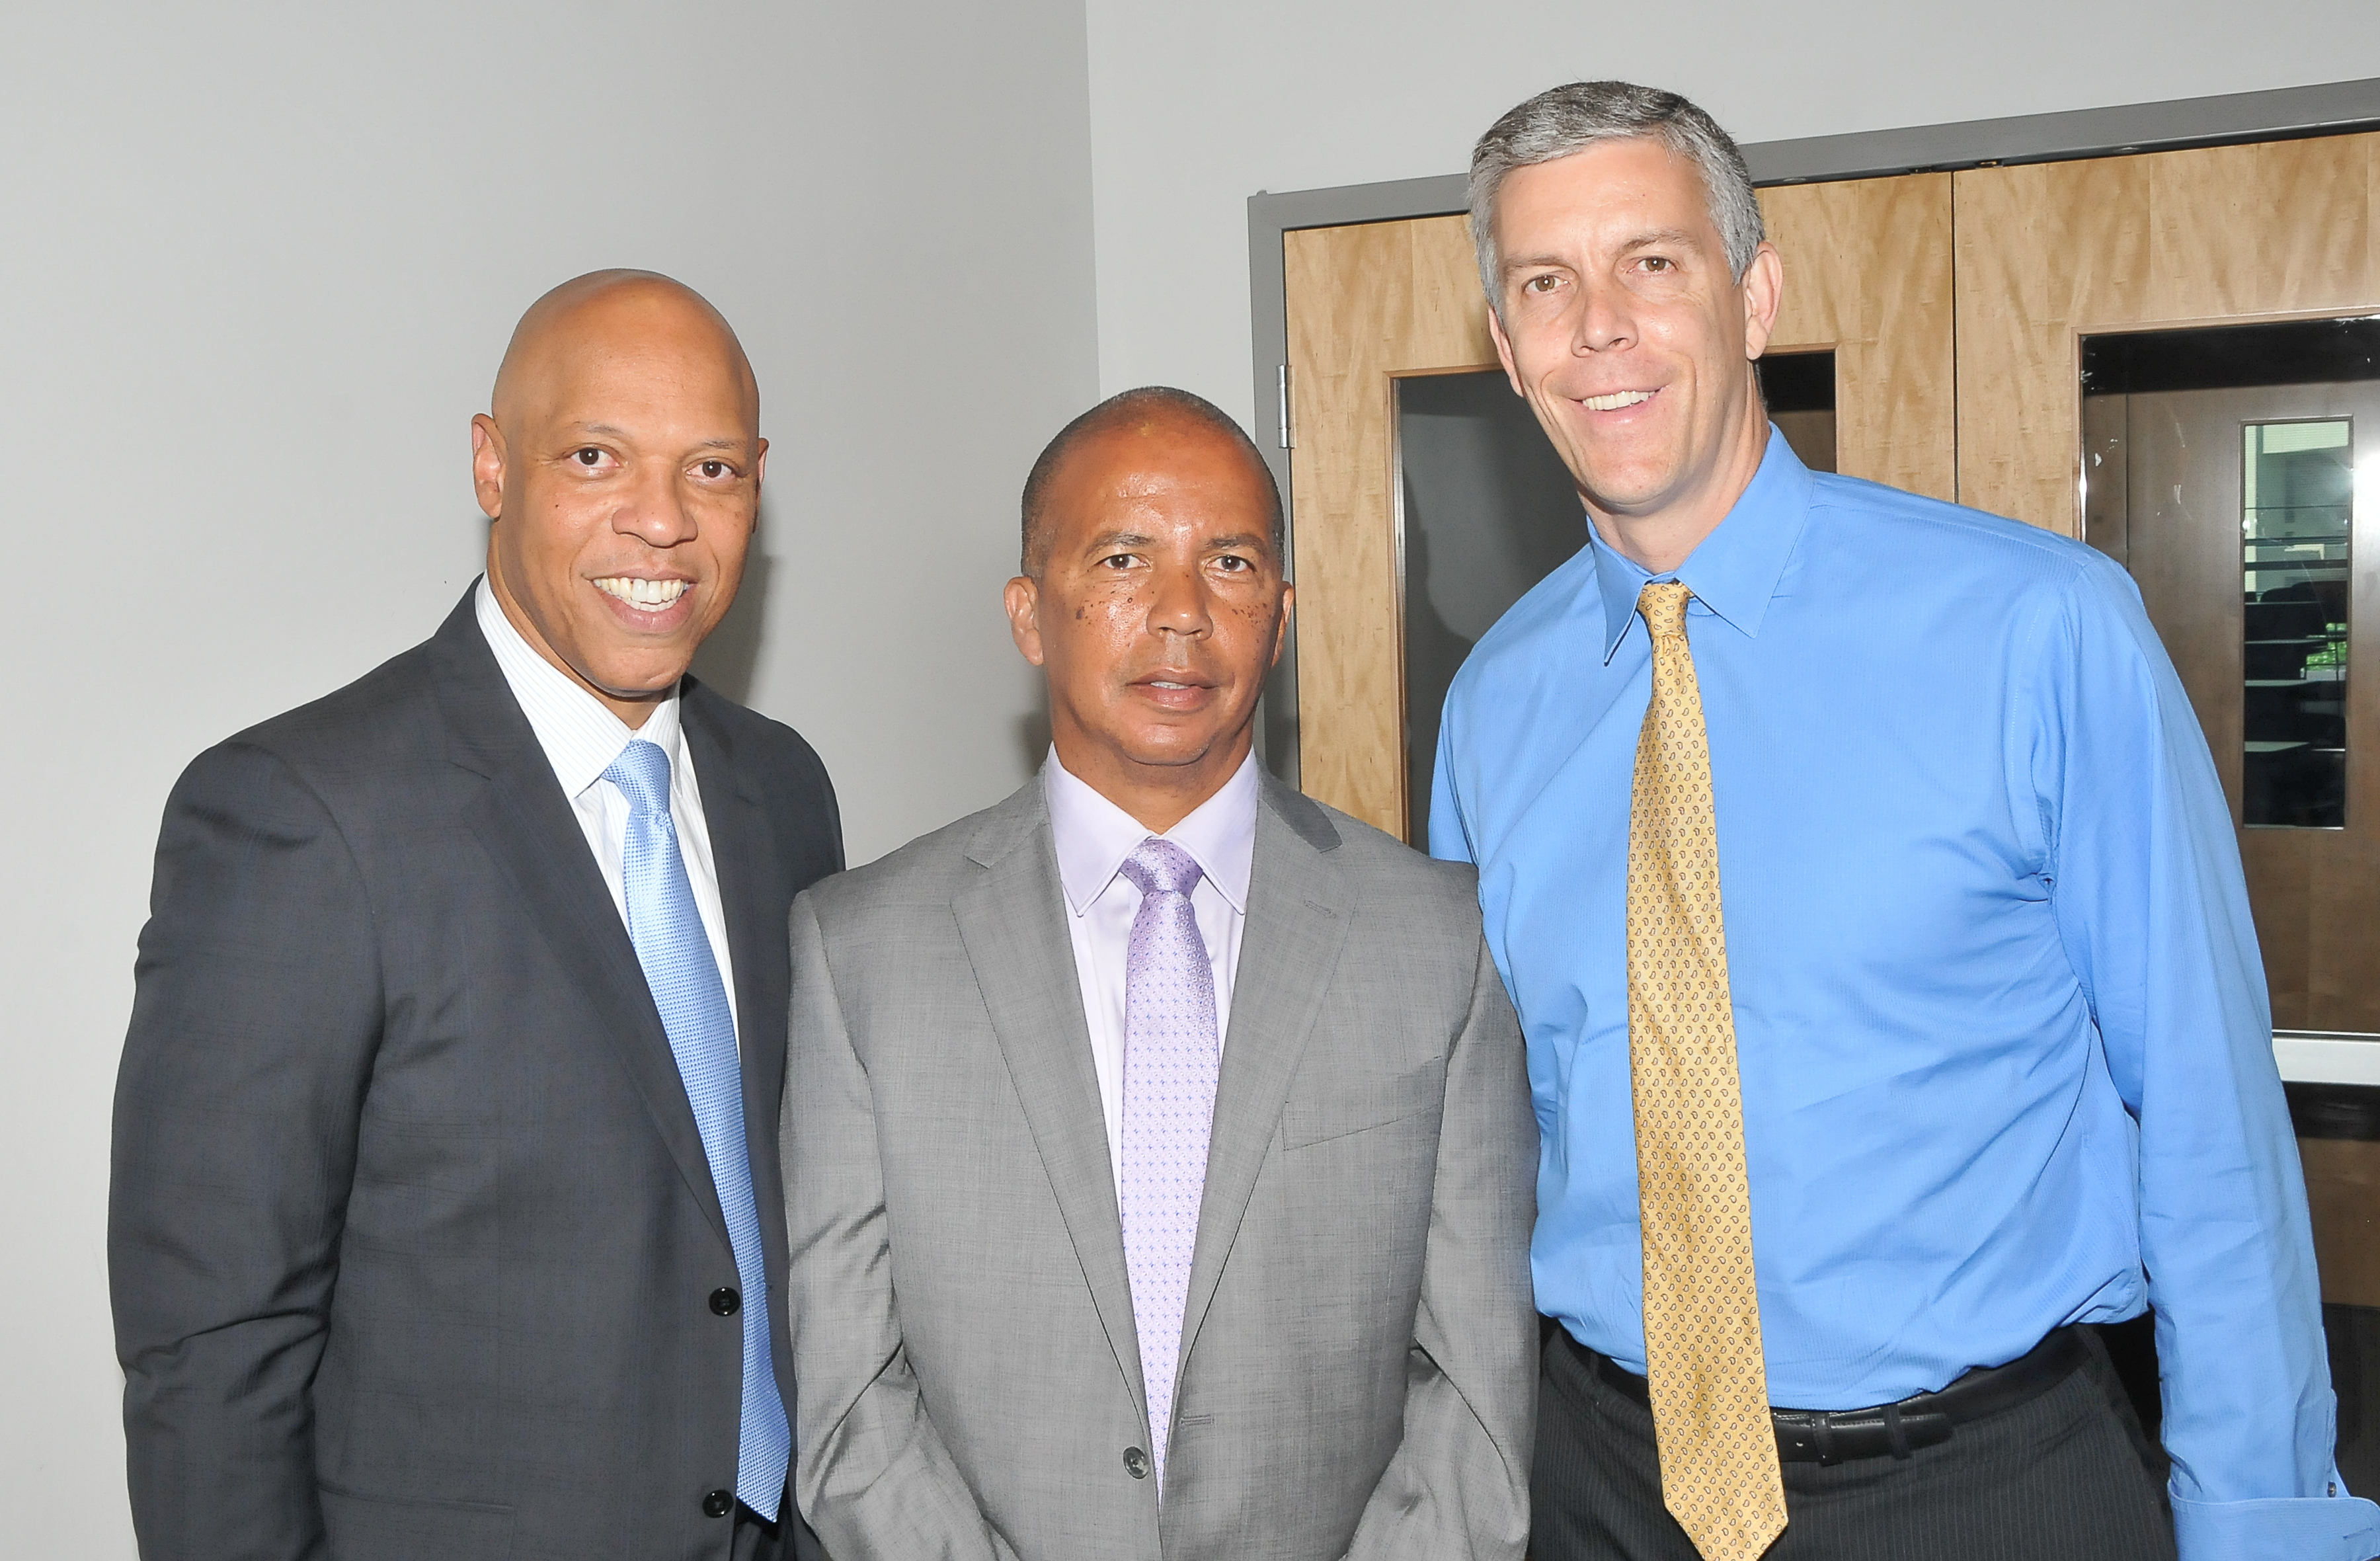 Left to right: Dr. William Hite, Jr., Dr. Donald Generals, Arne Duncan